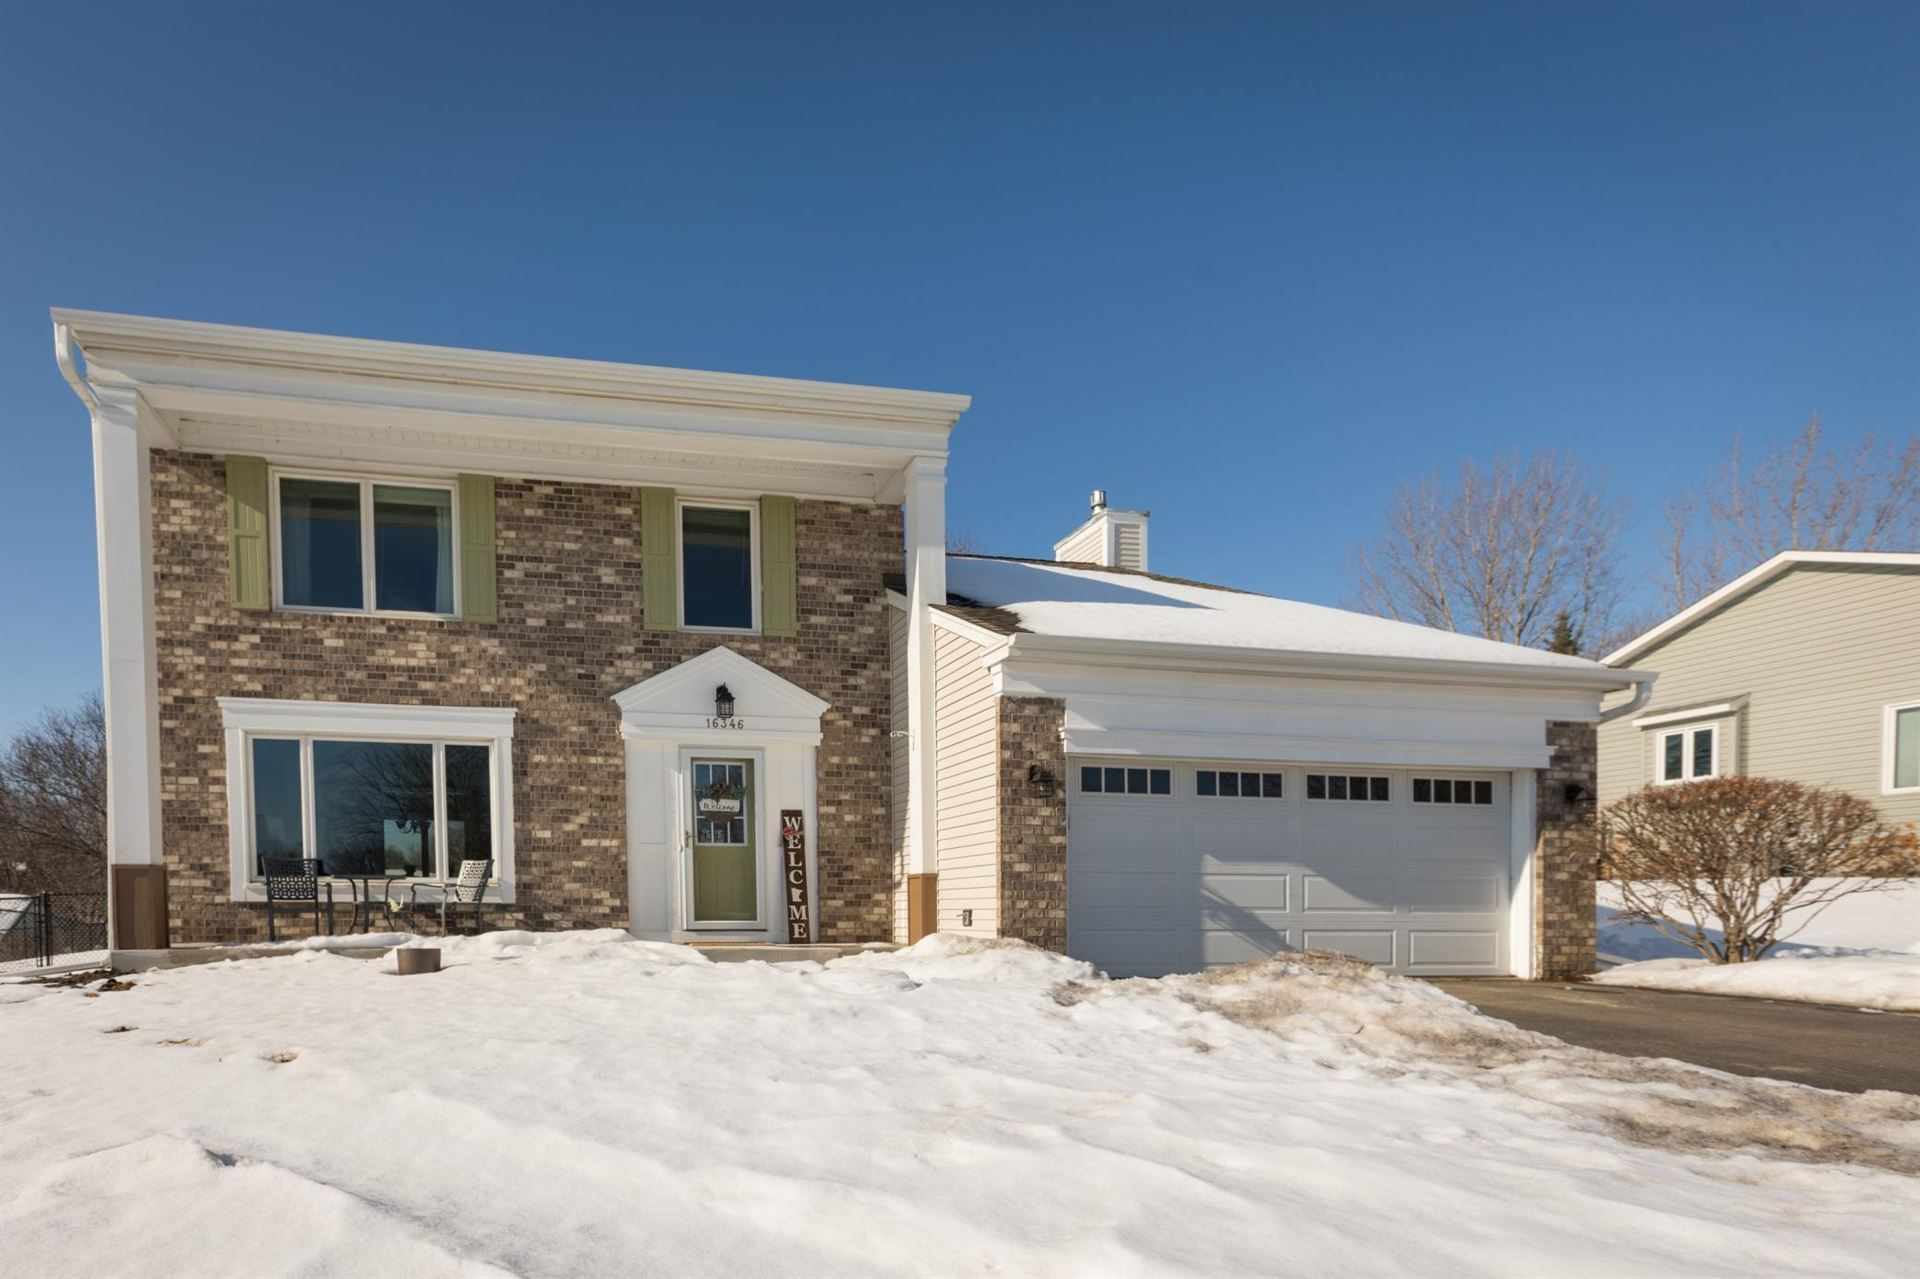 Photo of 16346 Greenbriar Court, Lakeville, MN 55044 (MLS # 5704268)